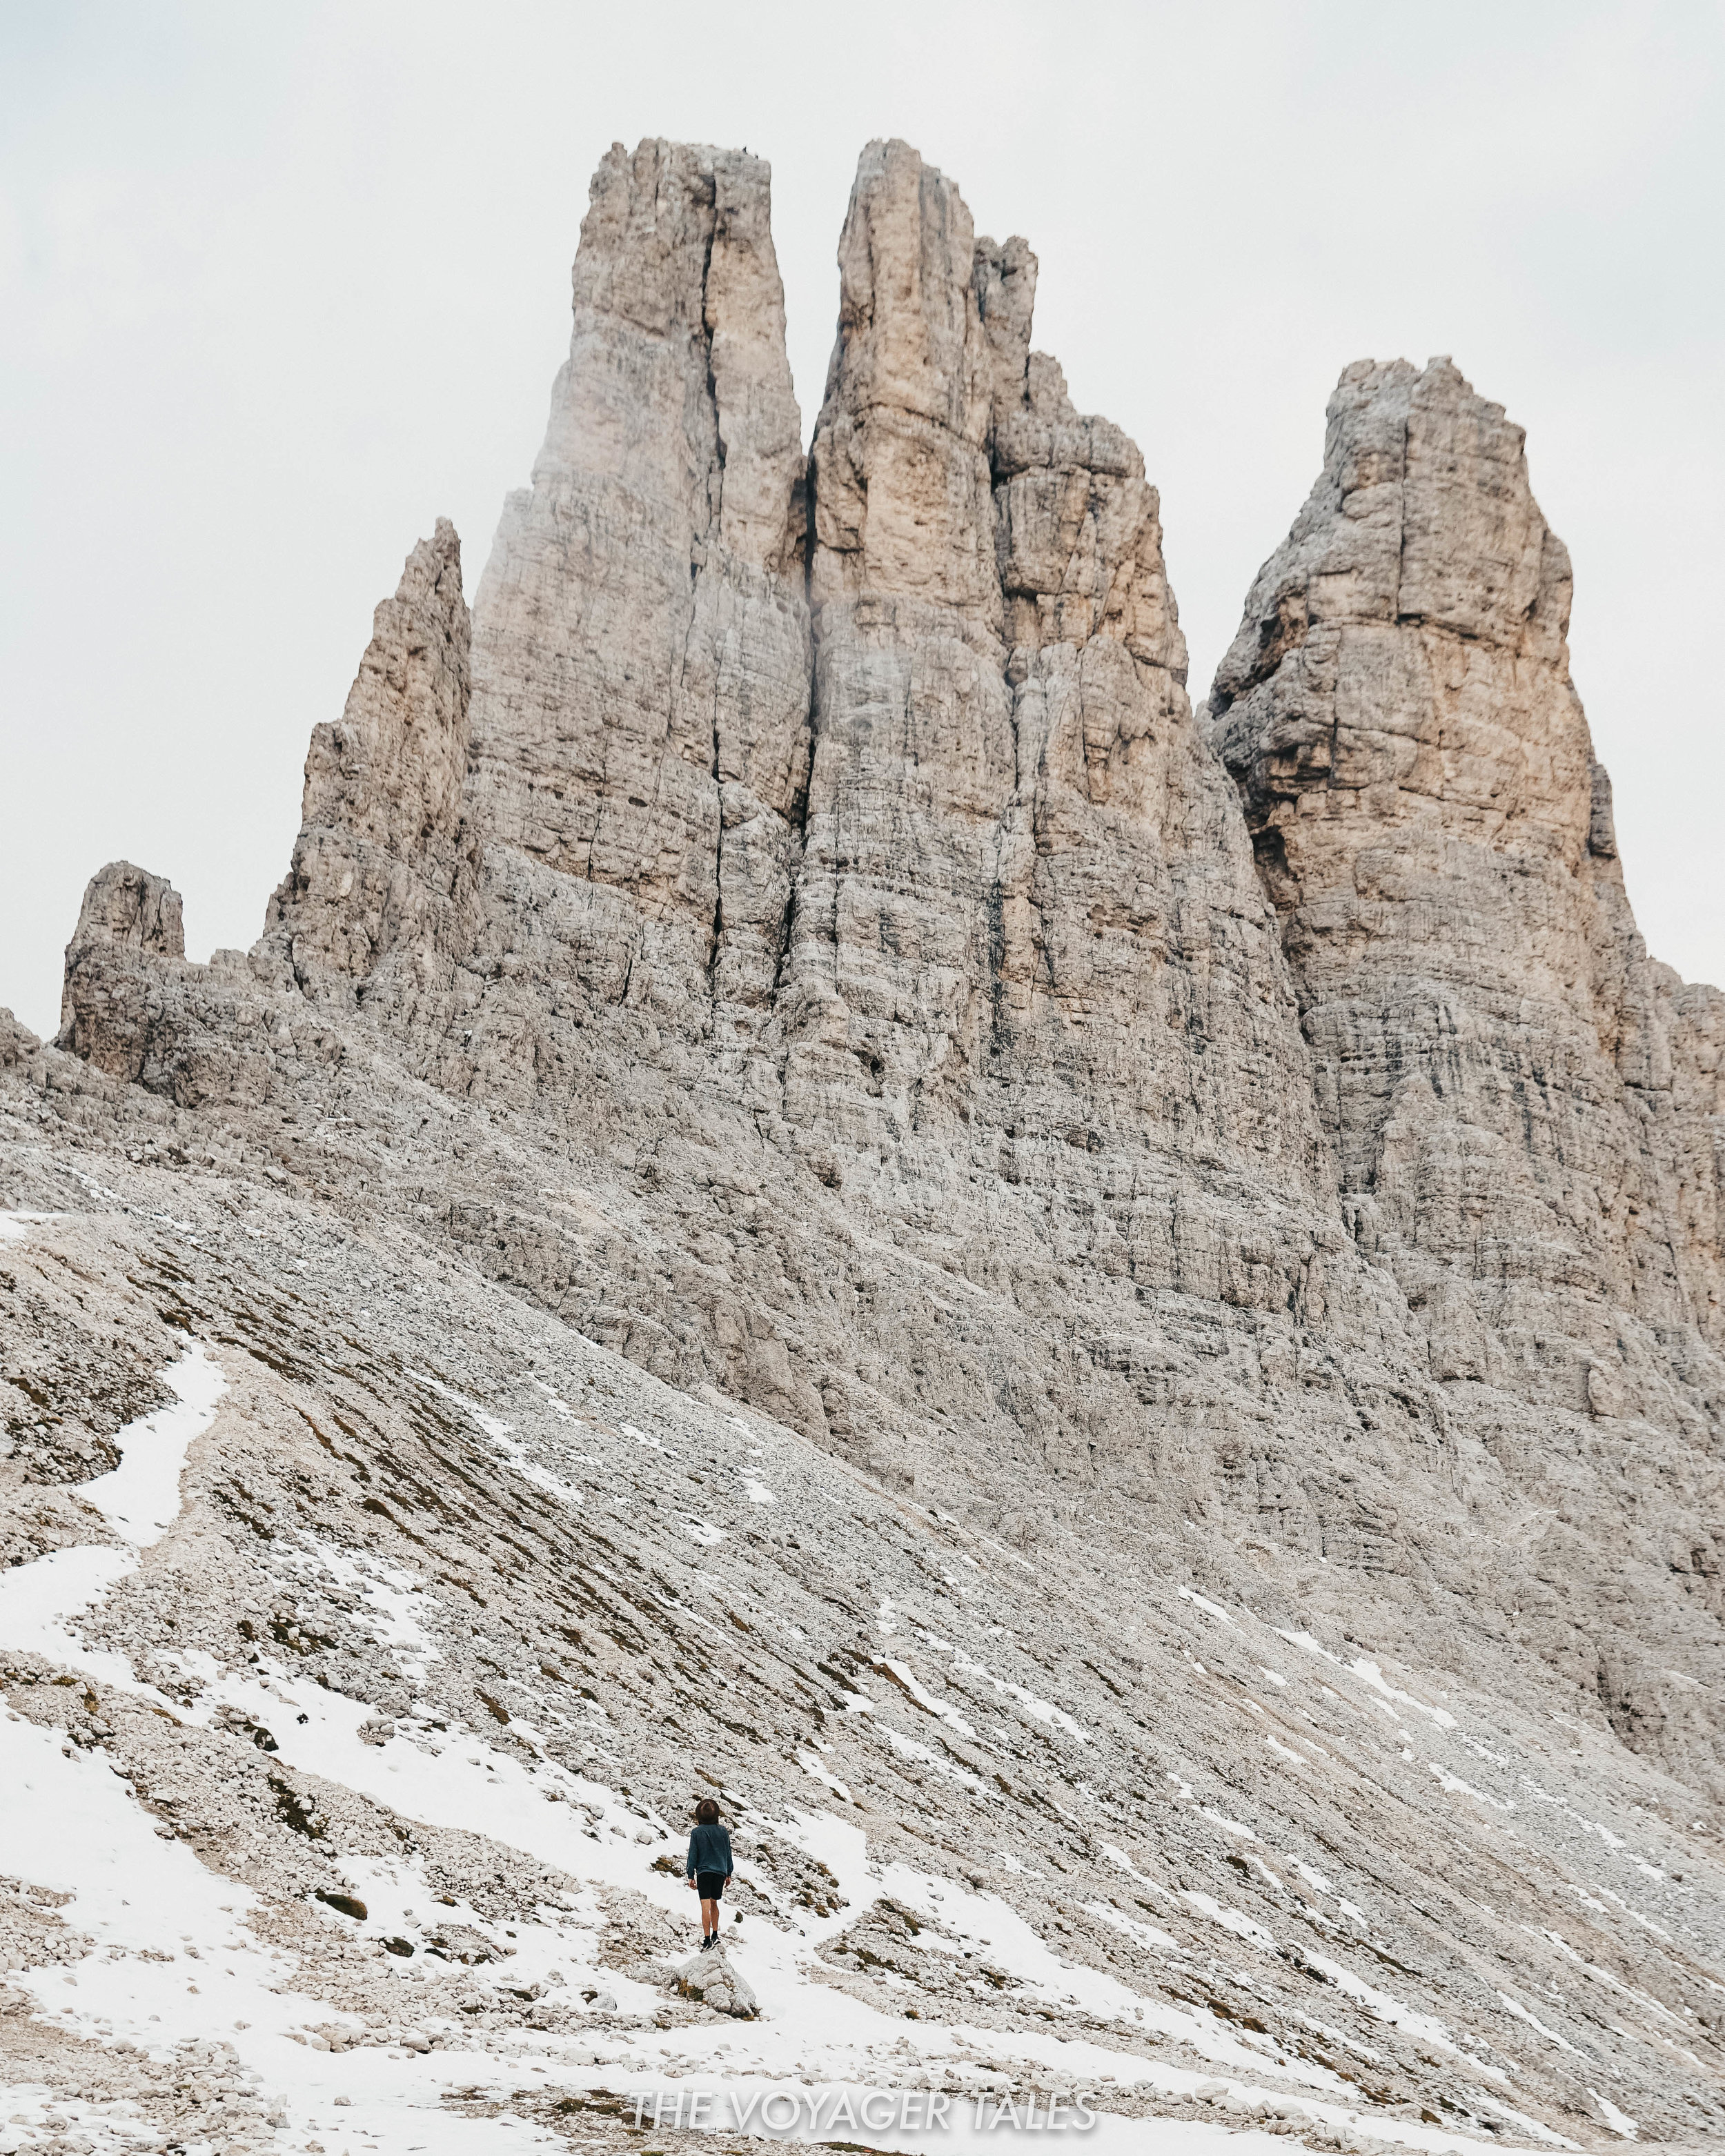 The Vajolet Towers amidst snow clouds in the Dolomites, Italy